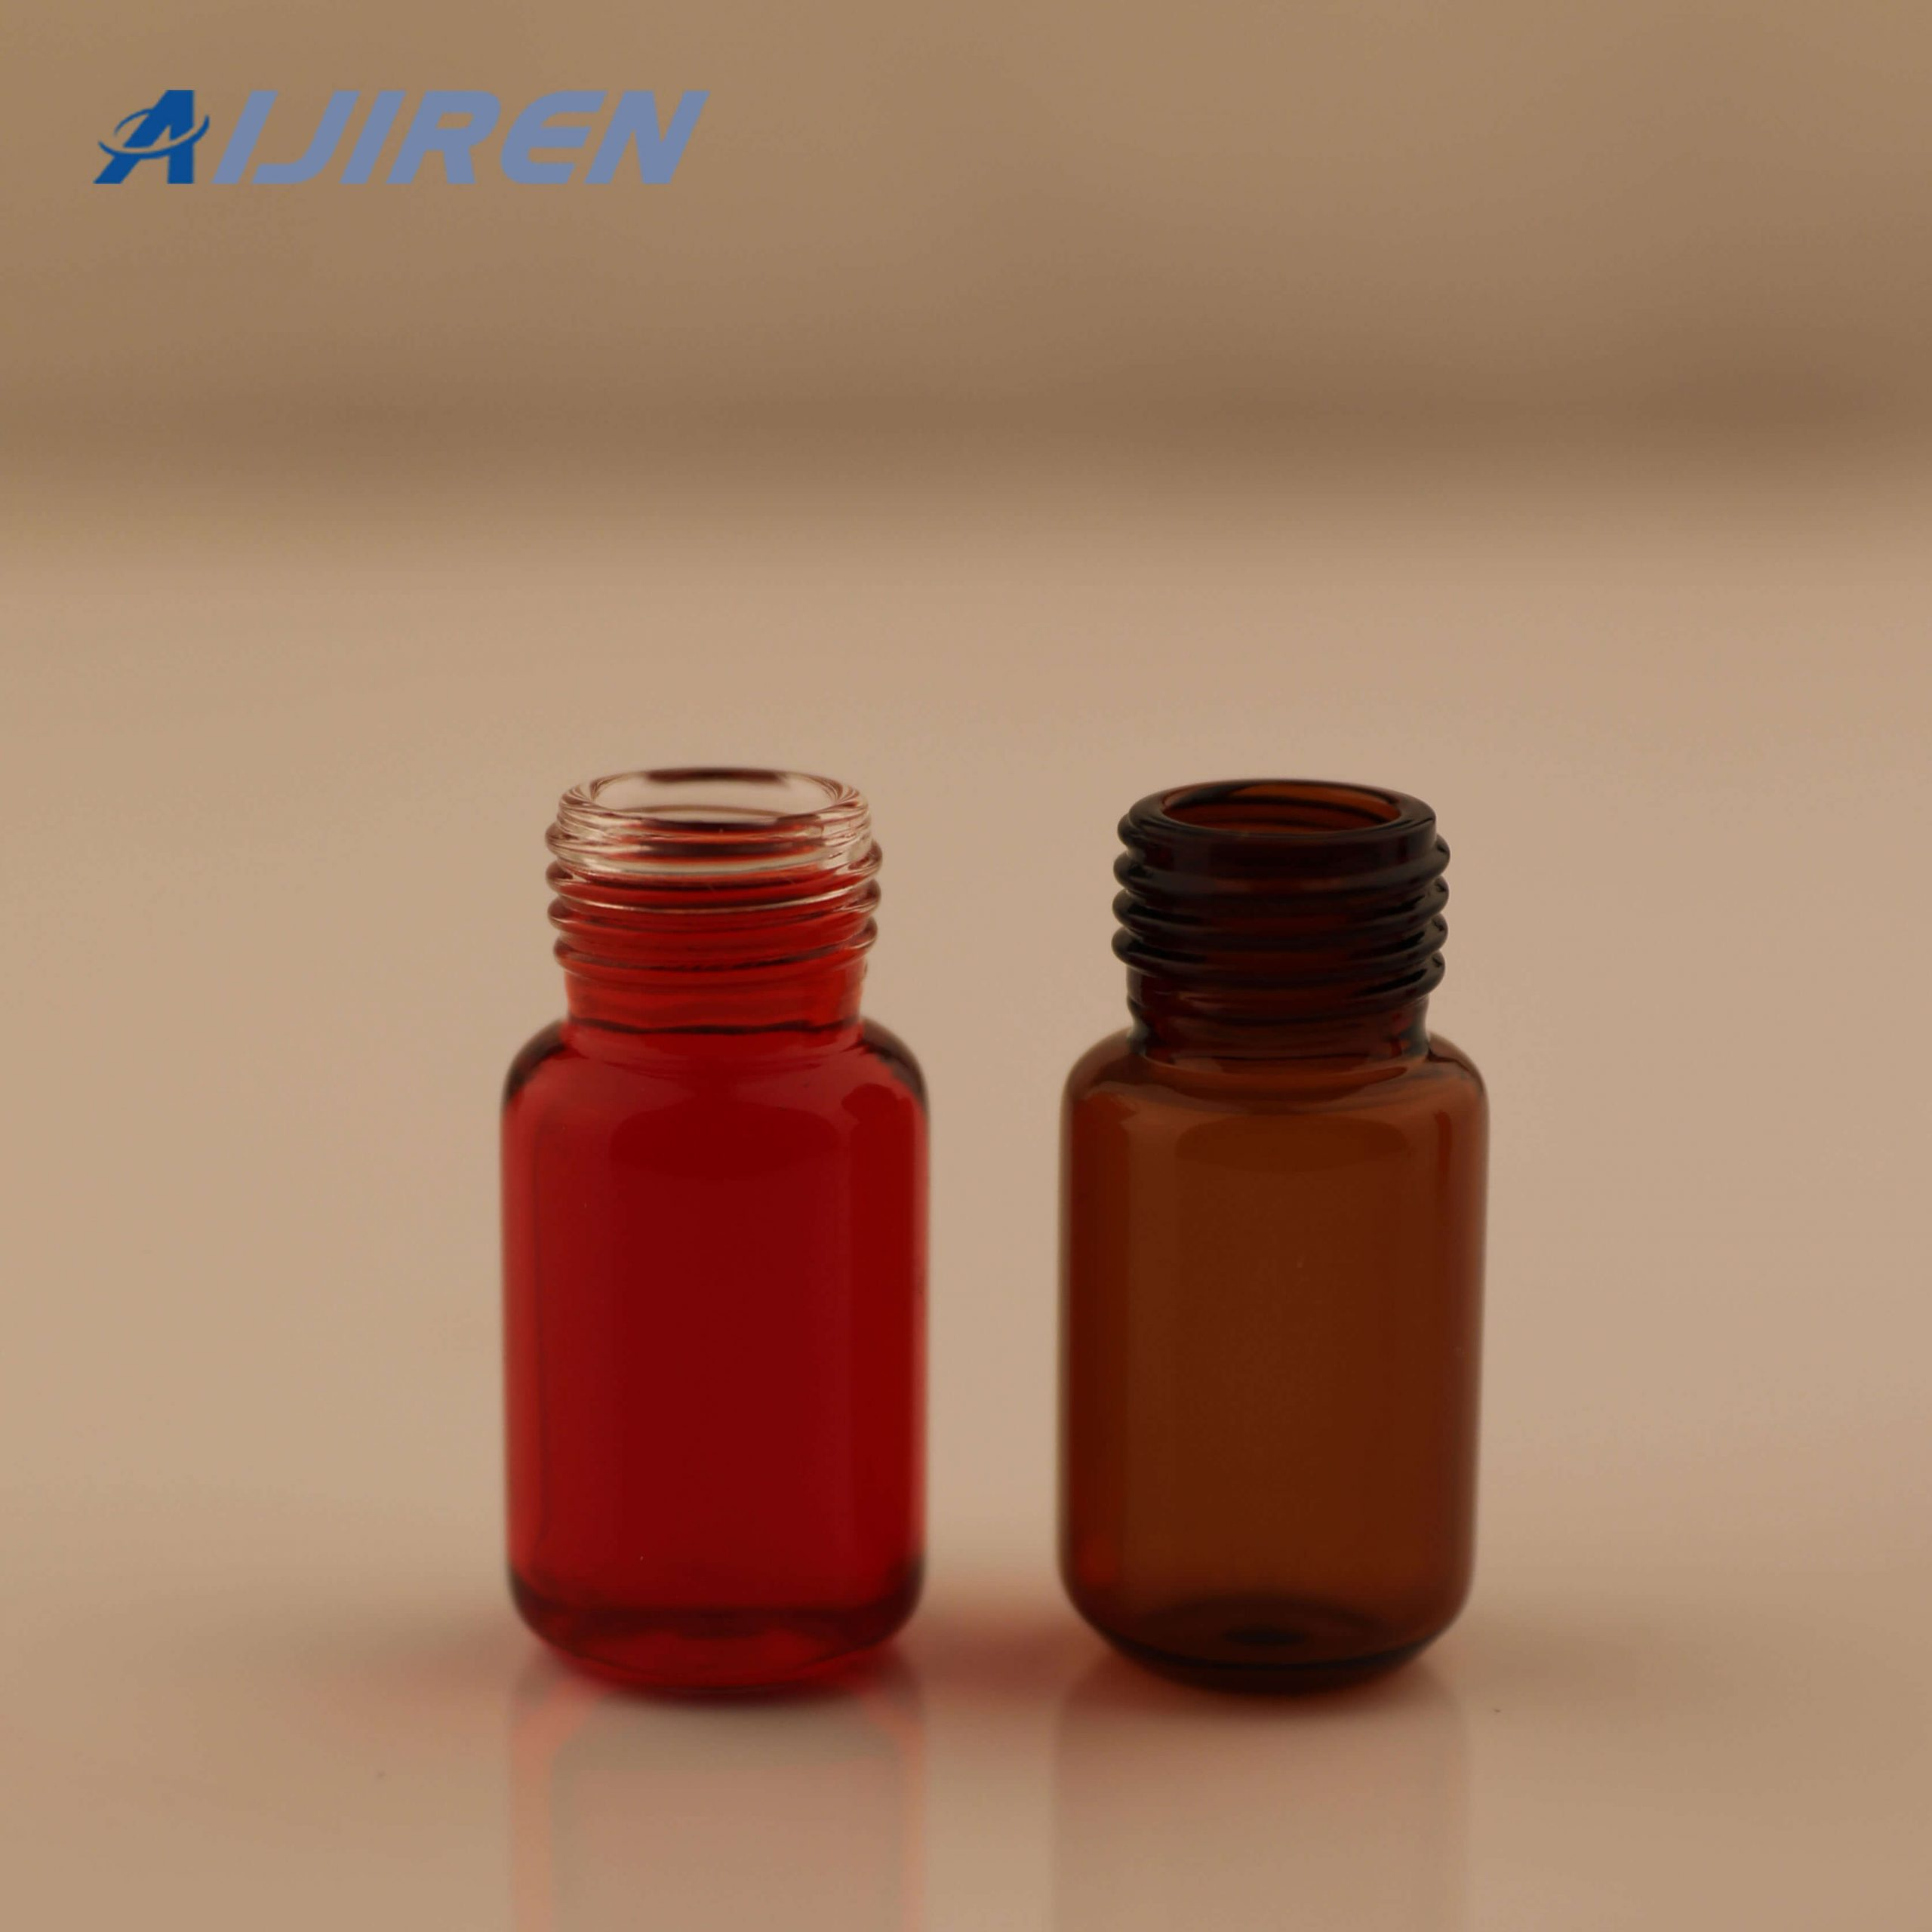 18mm Headspace Vials from Aijiren